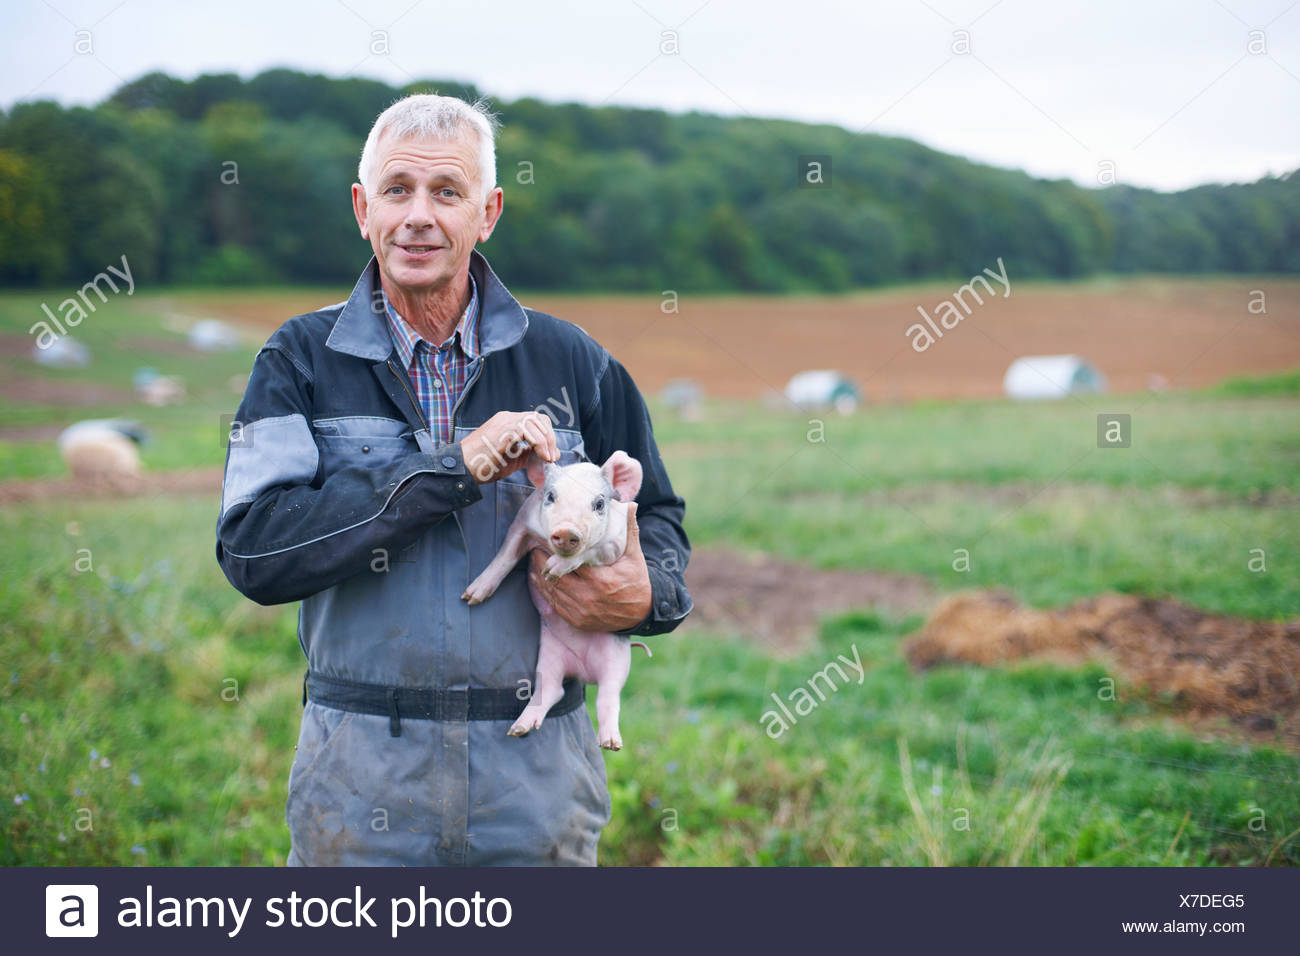 Farmer holding piglet in field - Stock Image